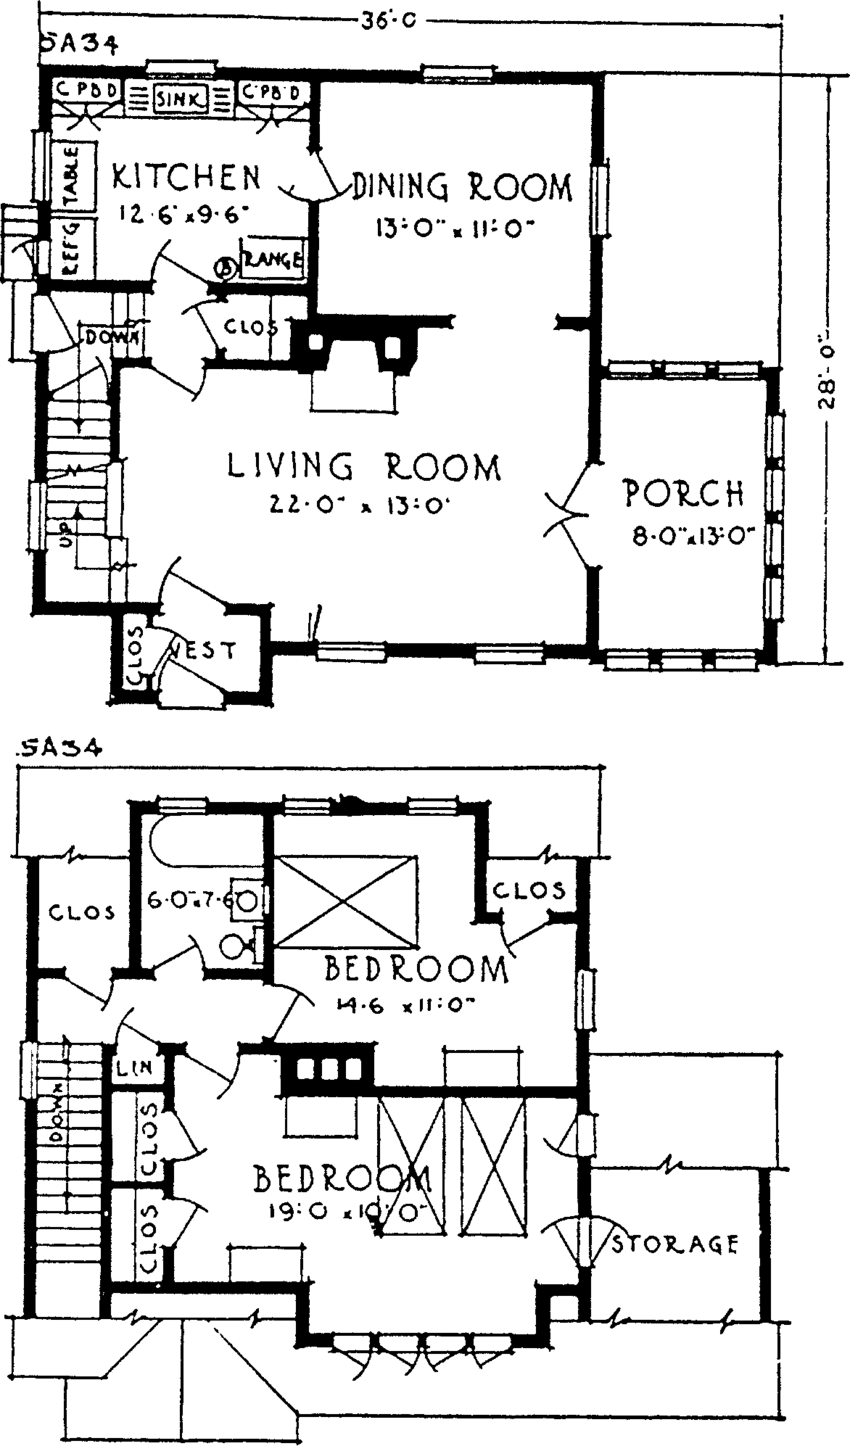 6 Plan for a suburban house from the 1920s; a modern